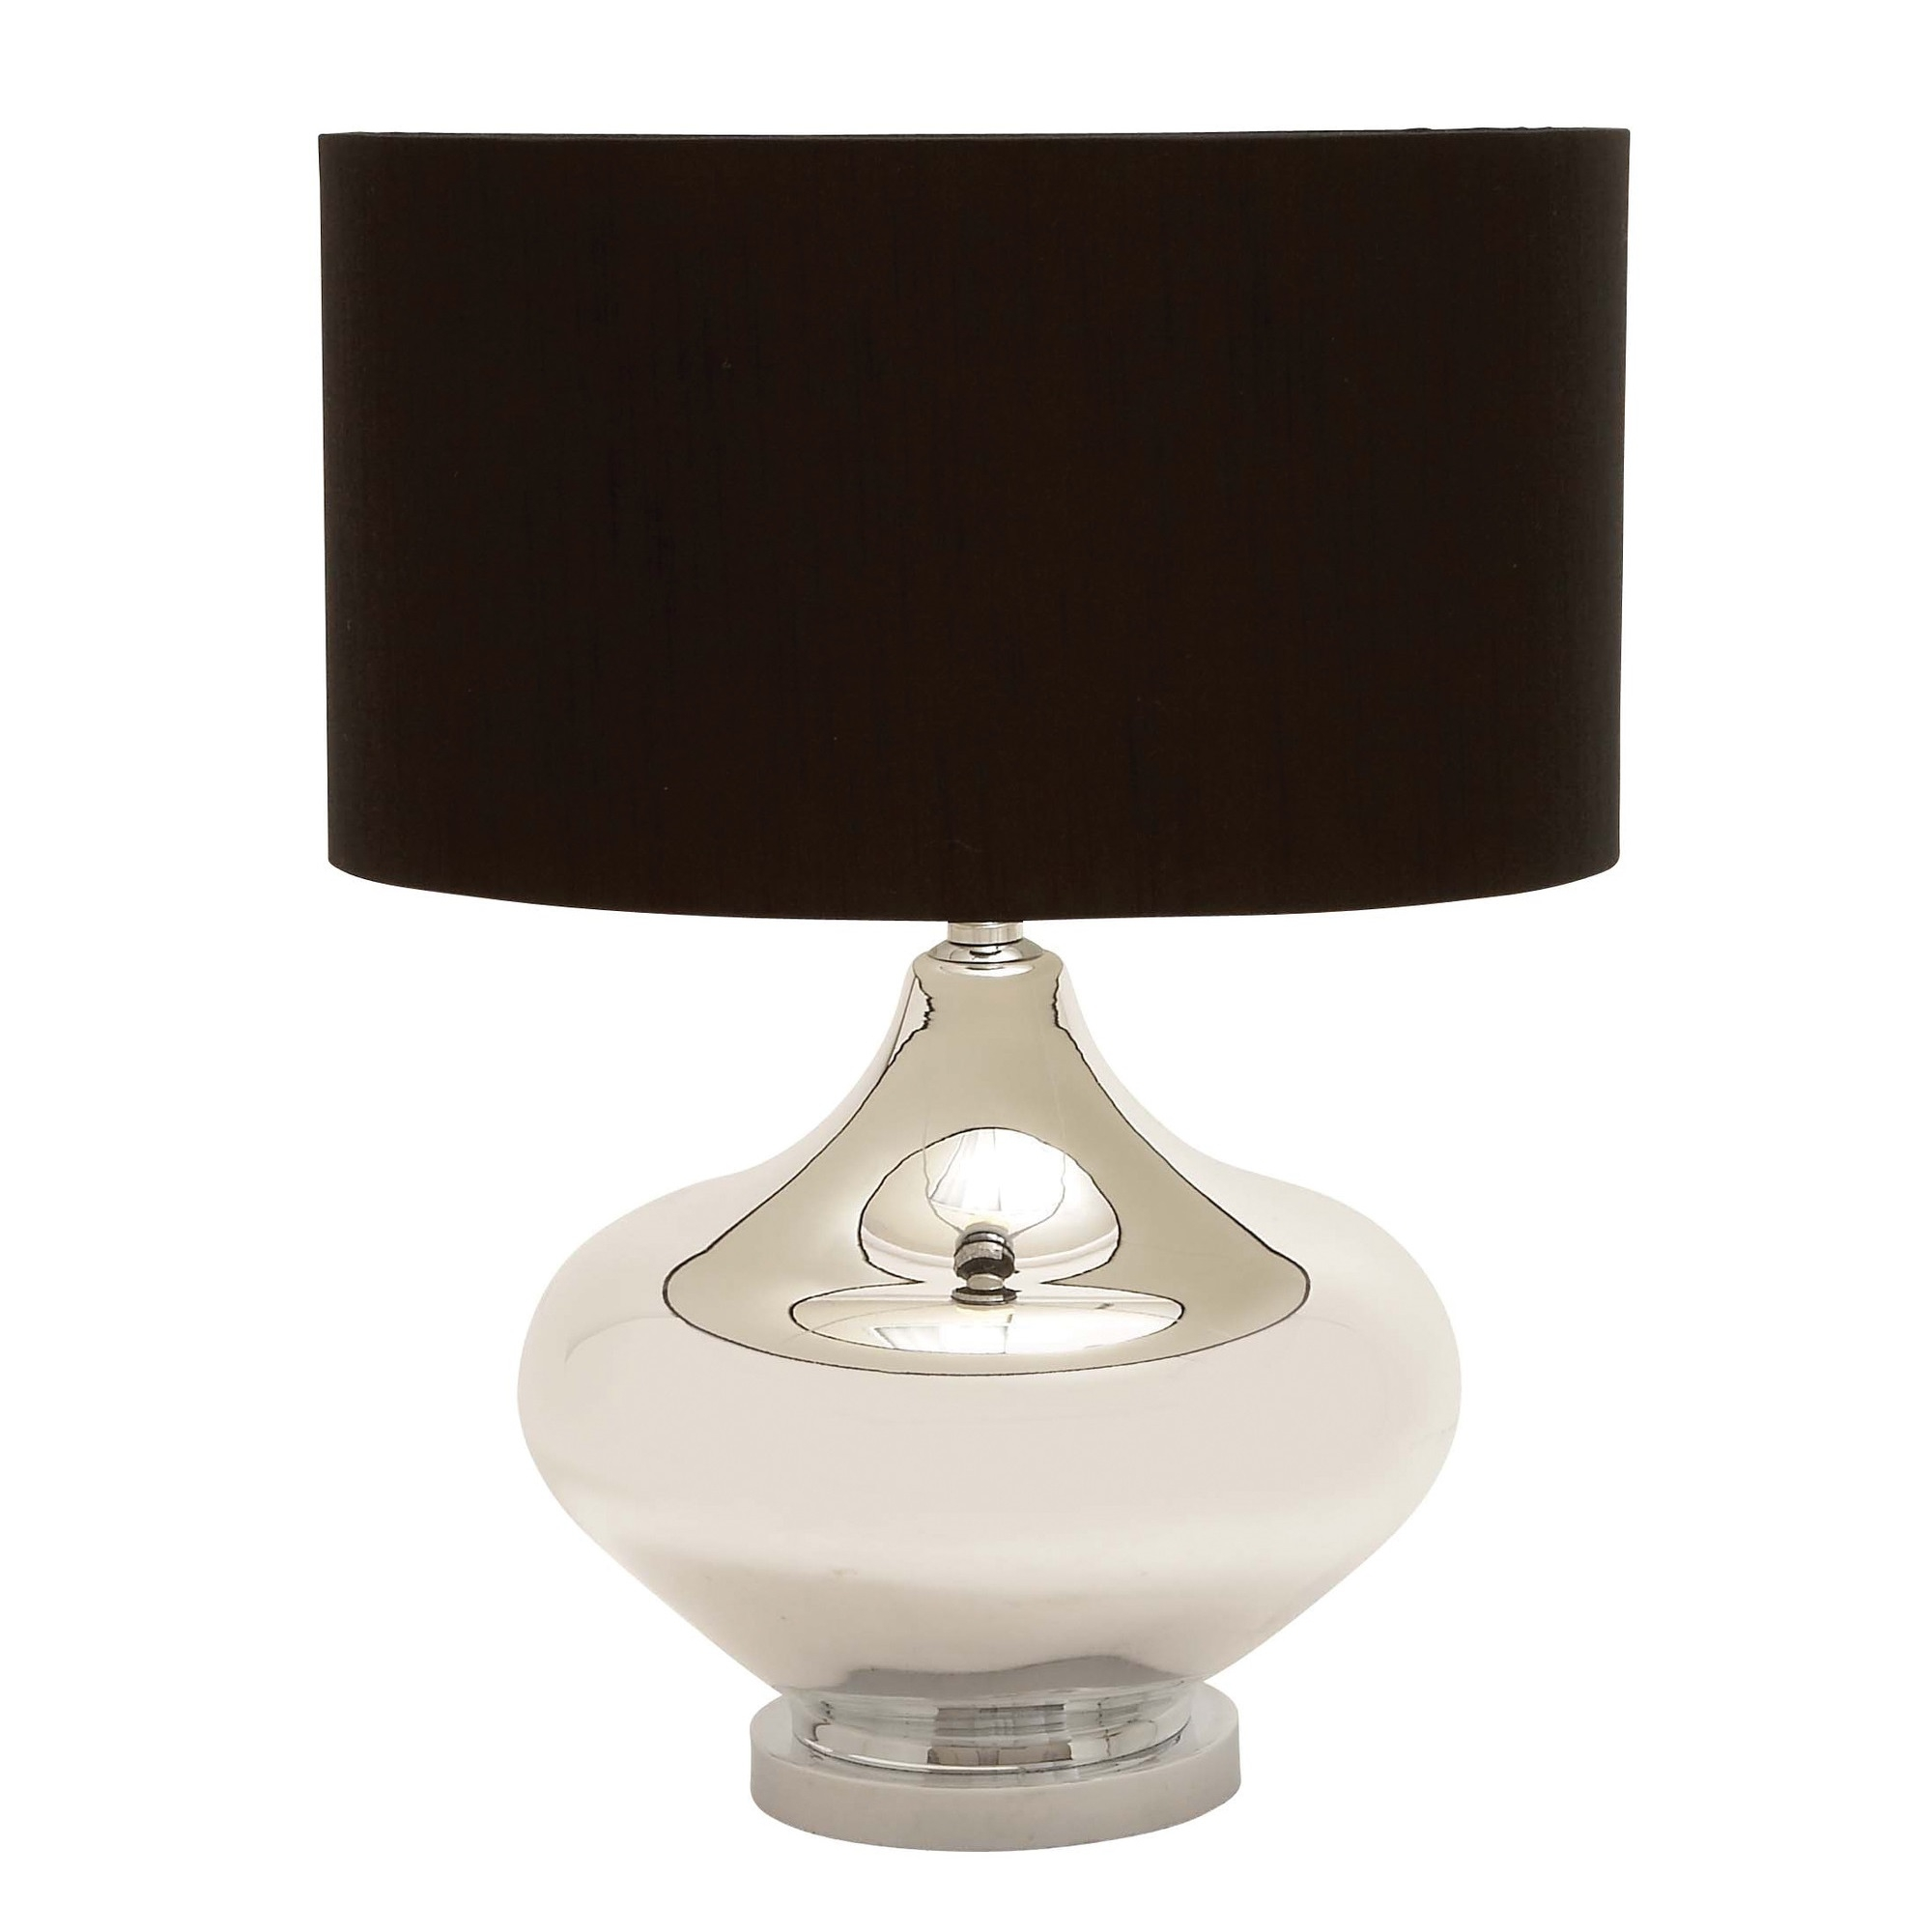 Woodland imports table lamp with brown drum shade l for Brown table lamp shades